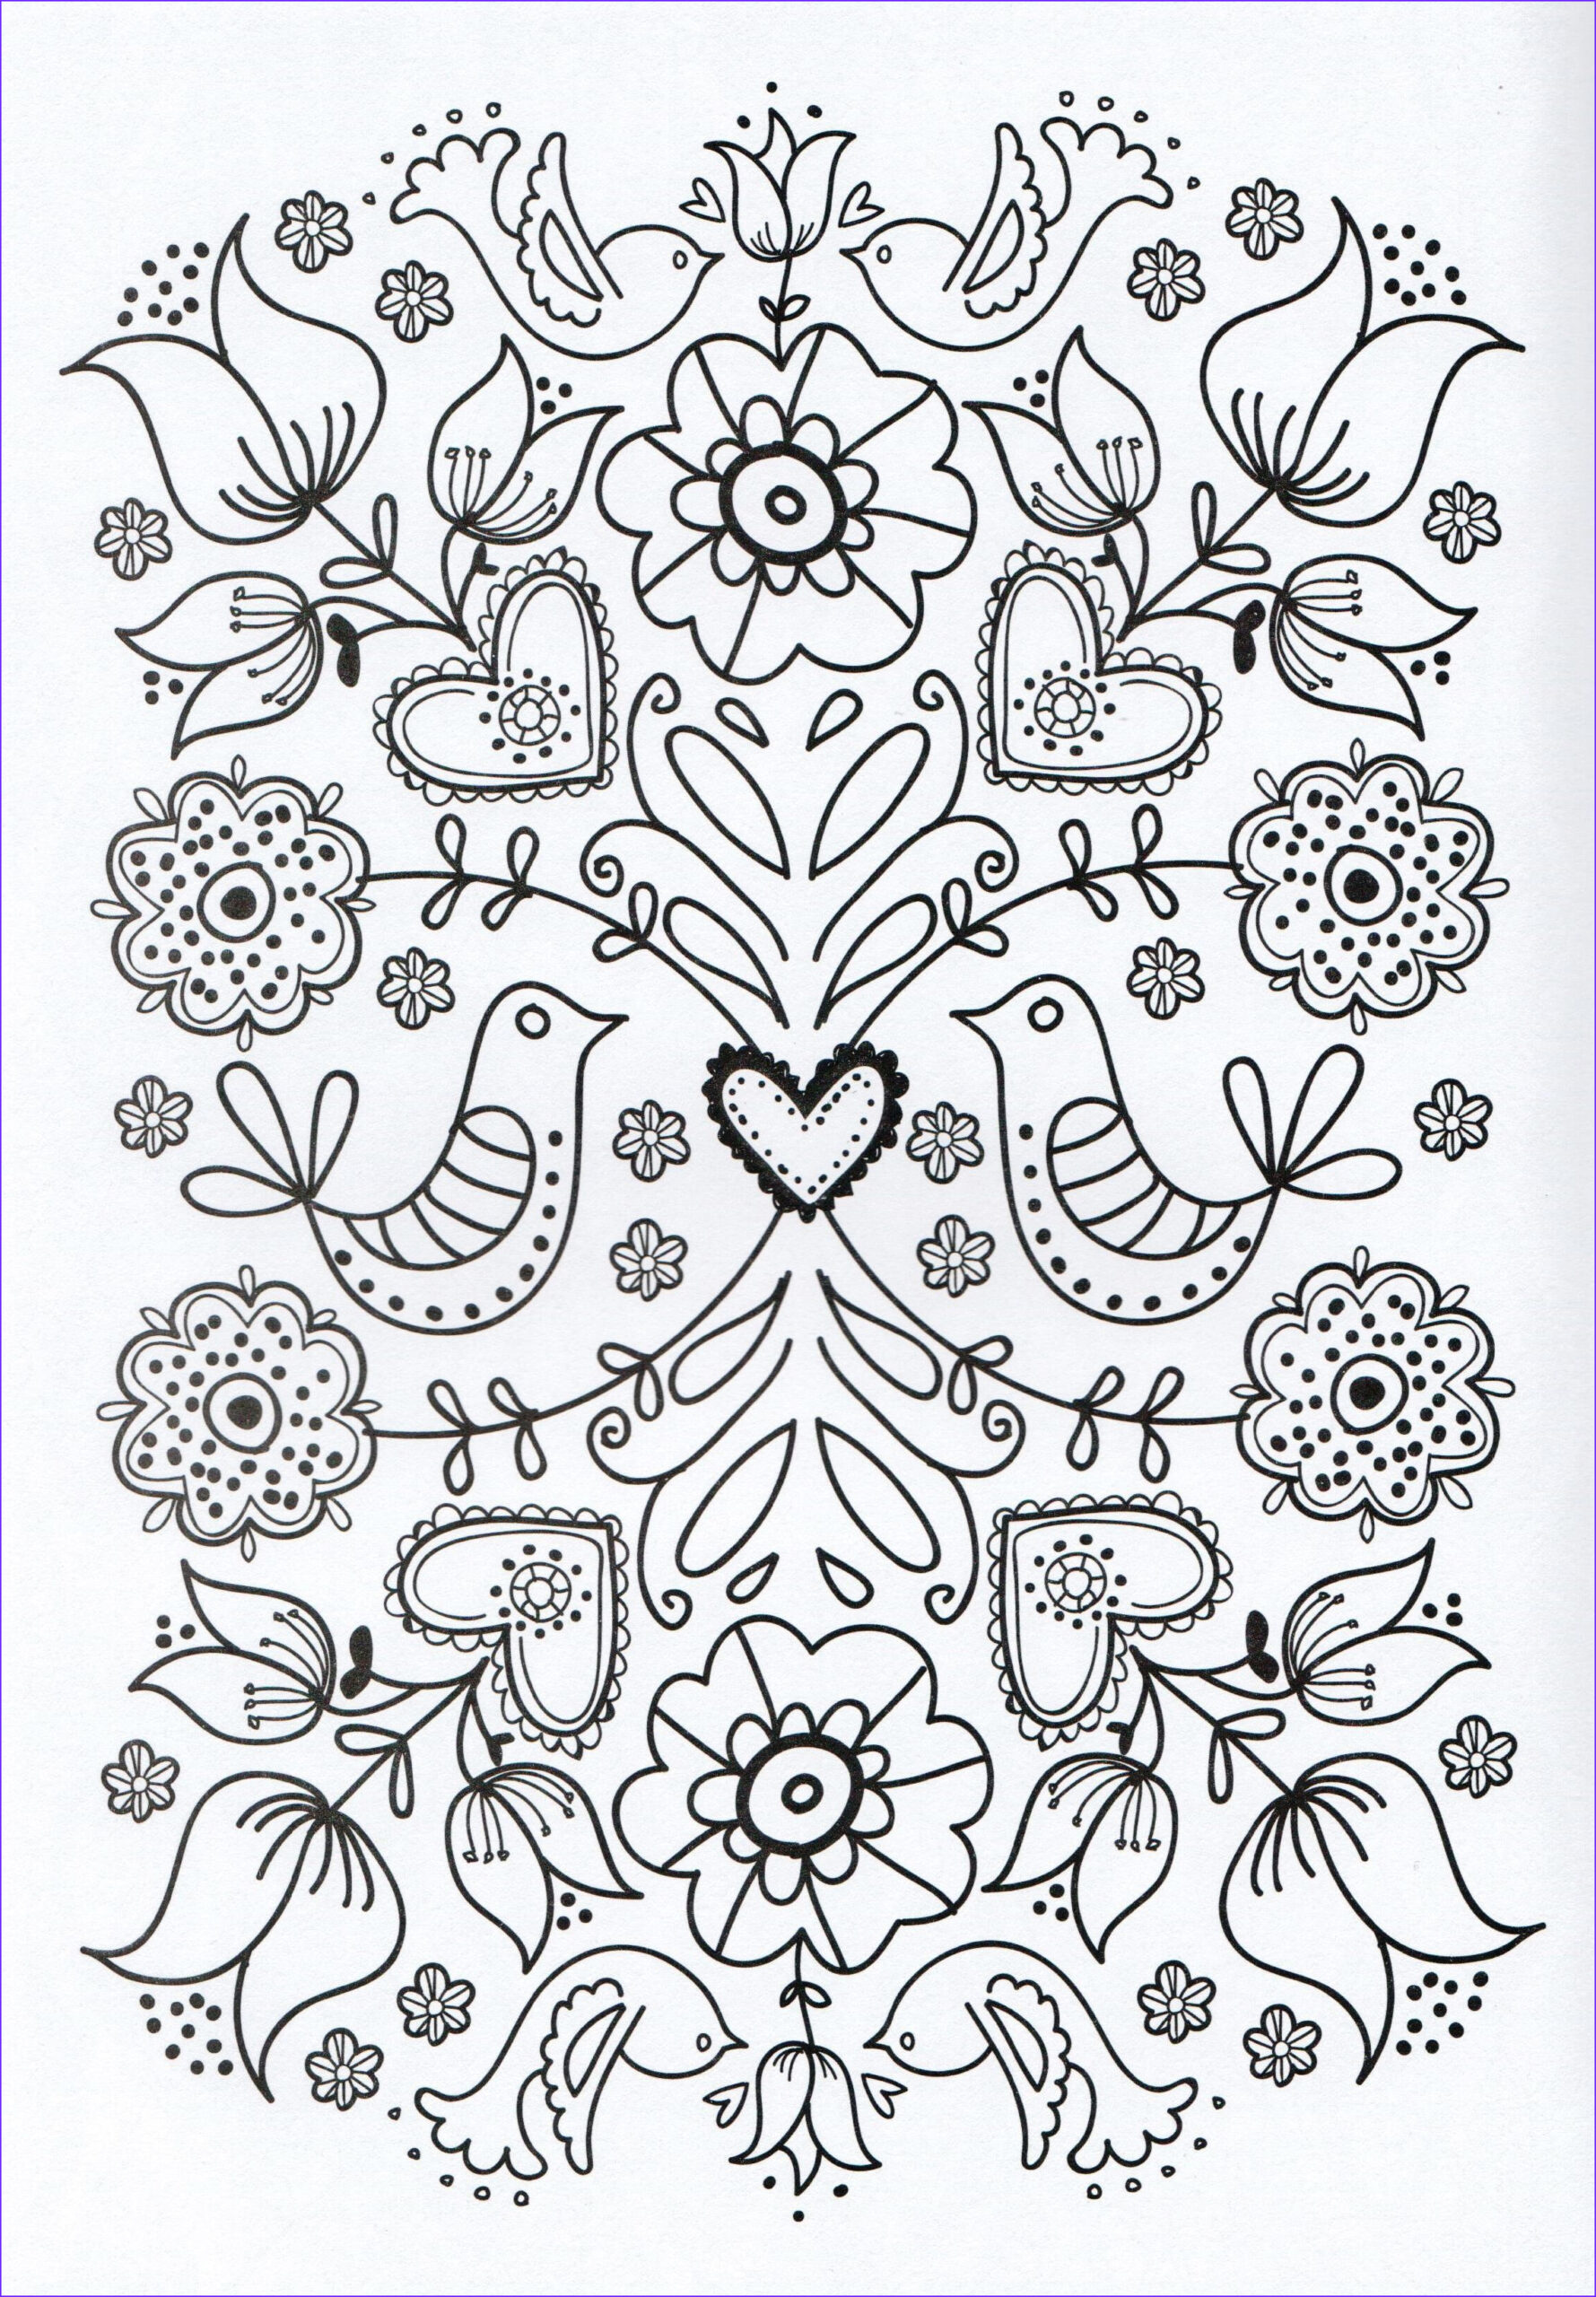 Adult Coloring Pages Easy Awesome Image 10 Simple & Useful Mother's Day Gifts to Diy or Buy